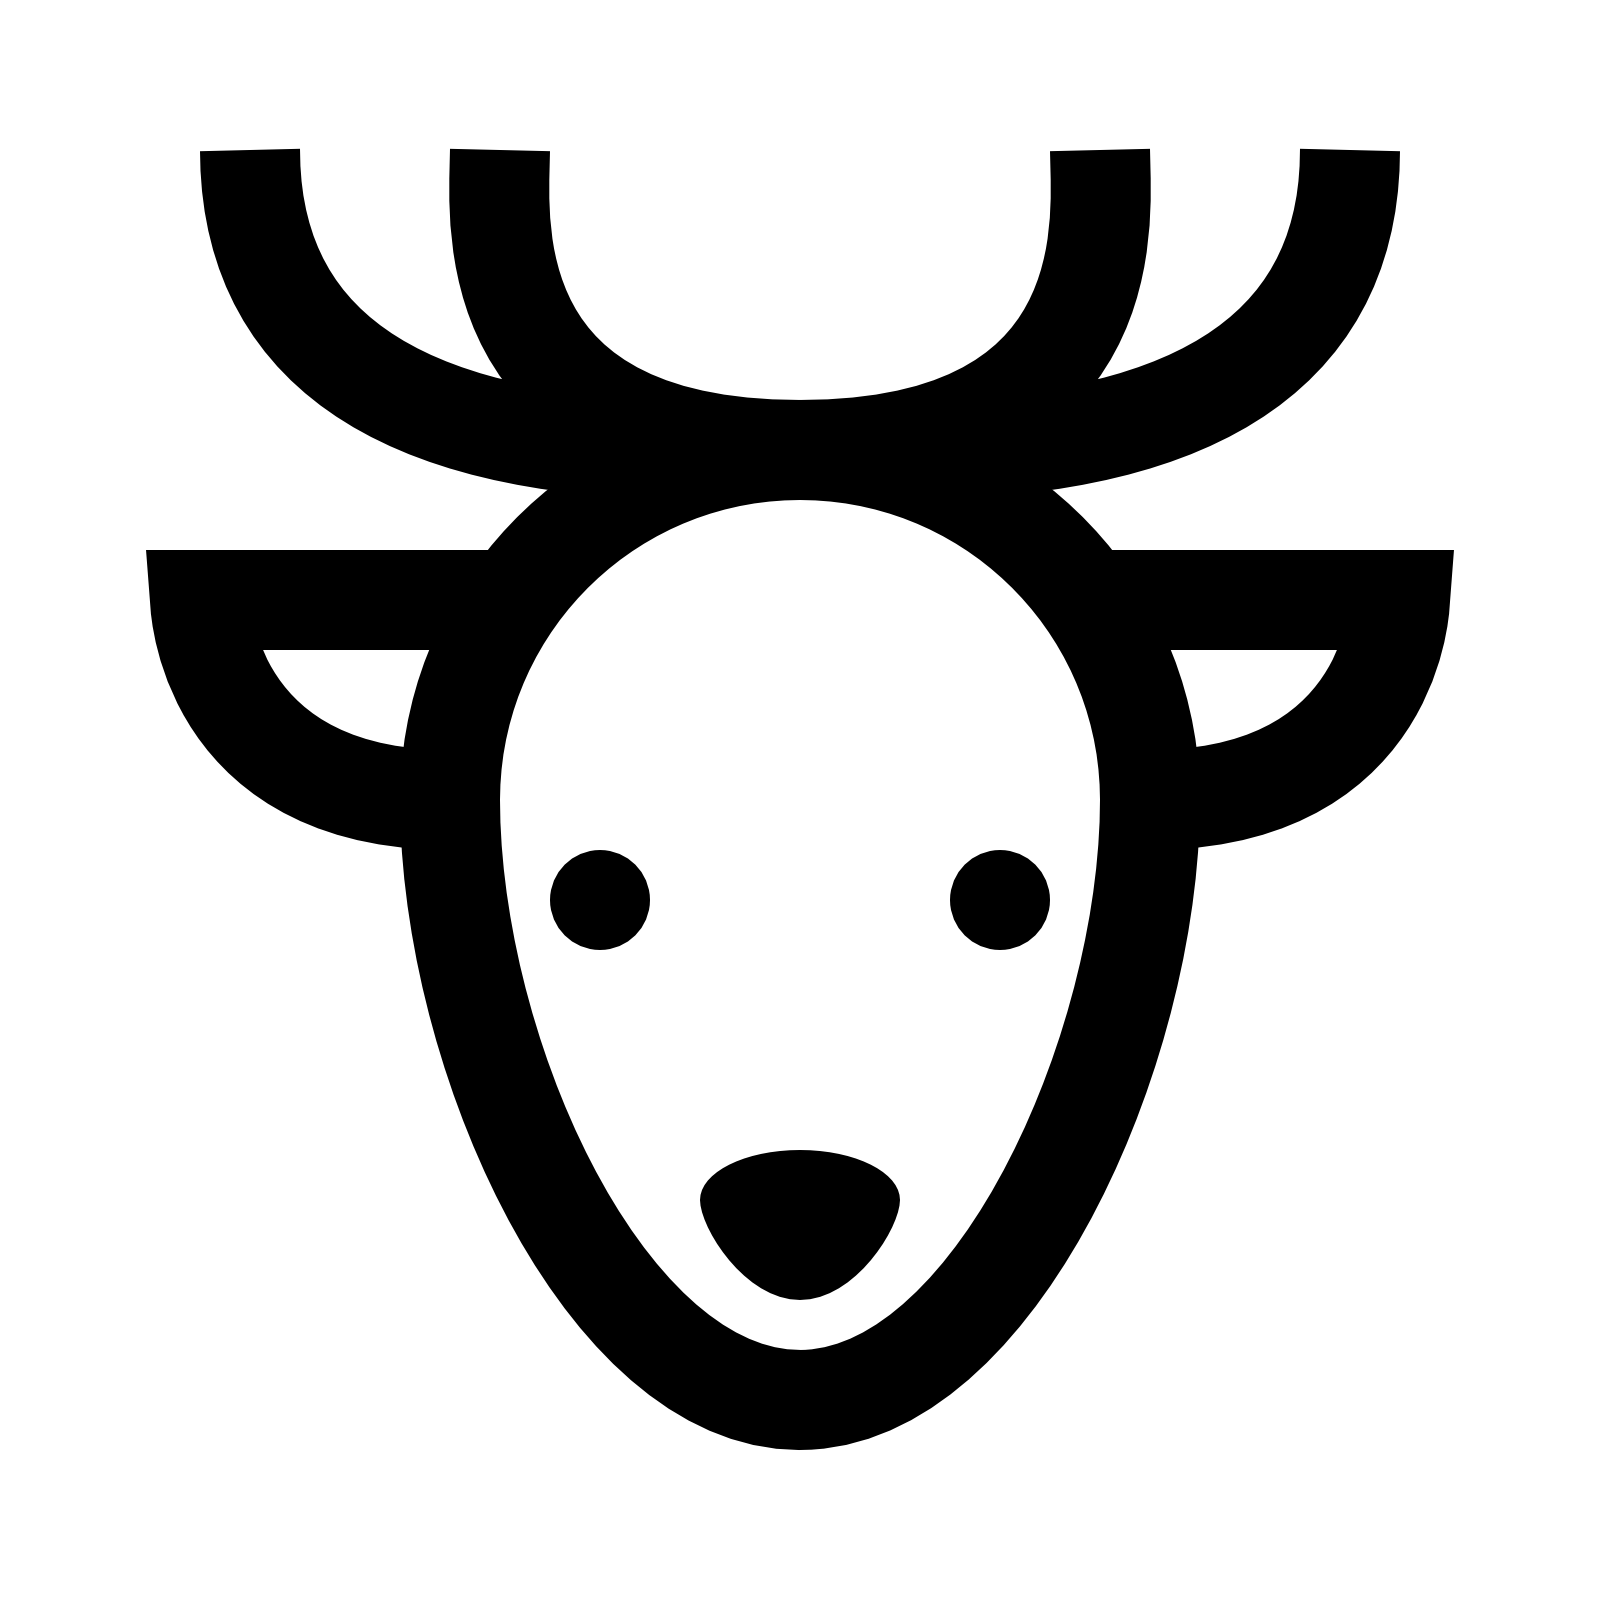 Reindeer black antlers png picture. Transparent free icons and